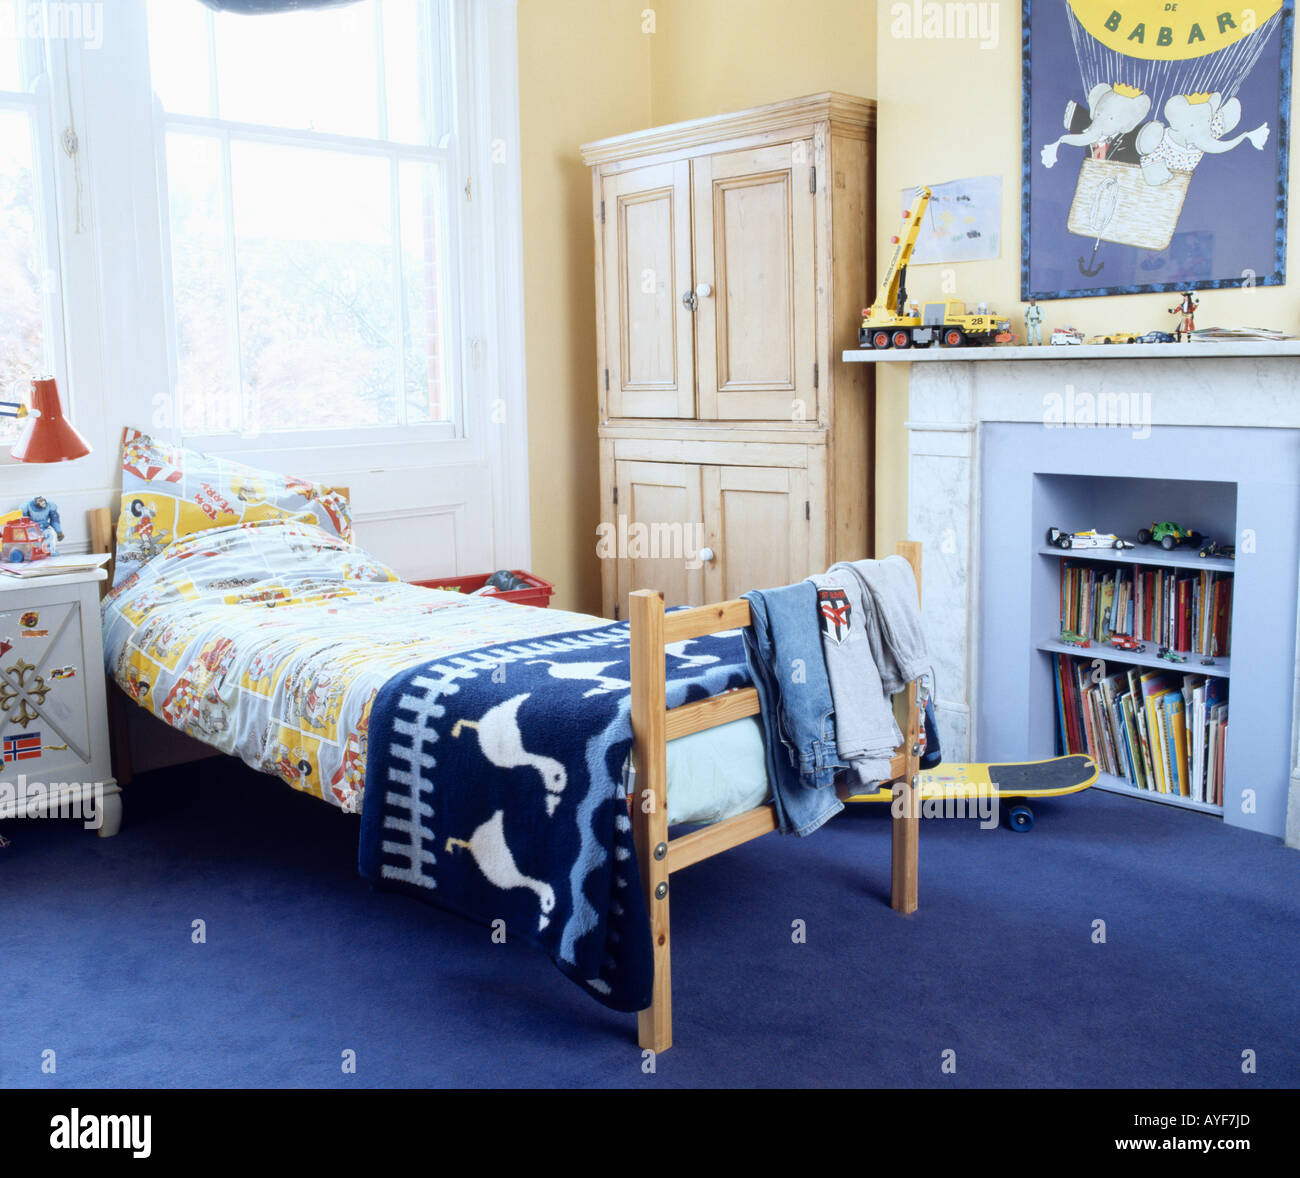 Carpet For Bedrooms: Children's Bedroom With Blue Rug On Bed And Blue Carpet